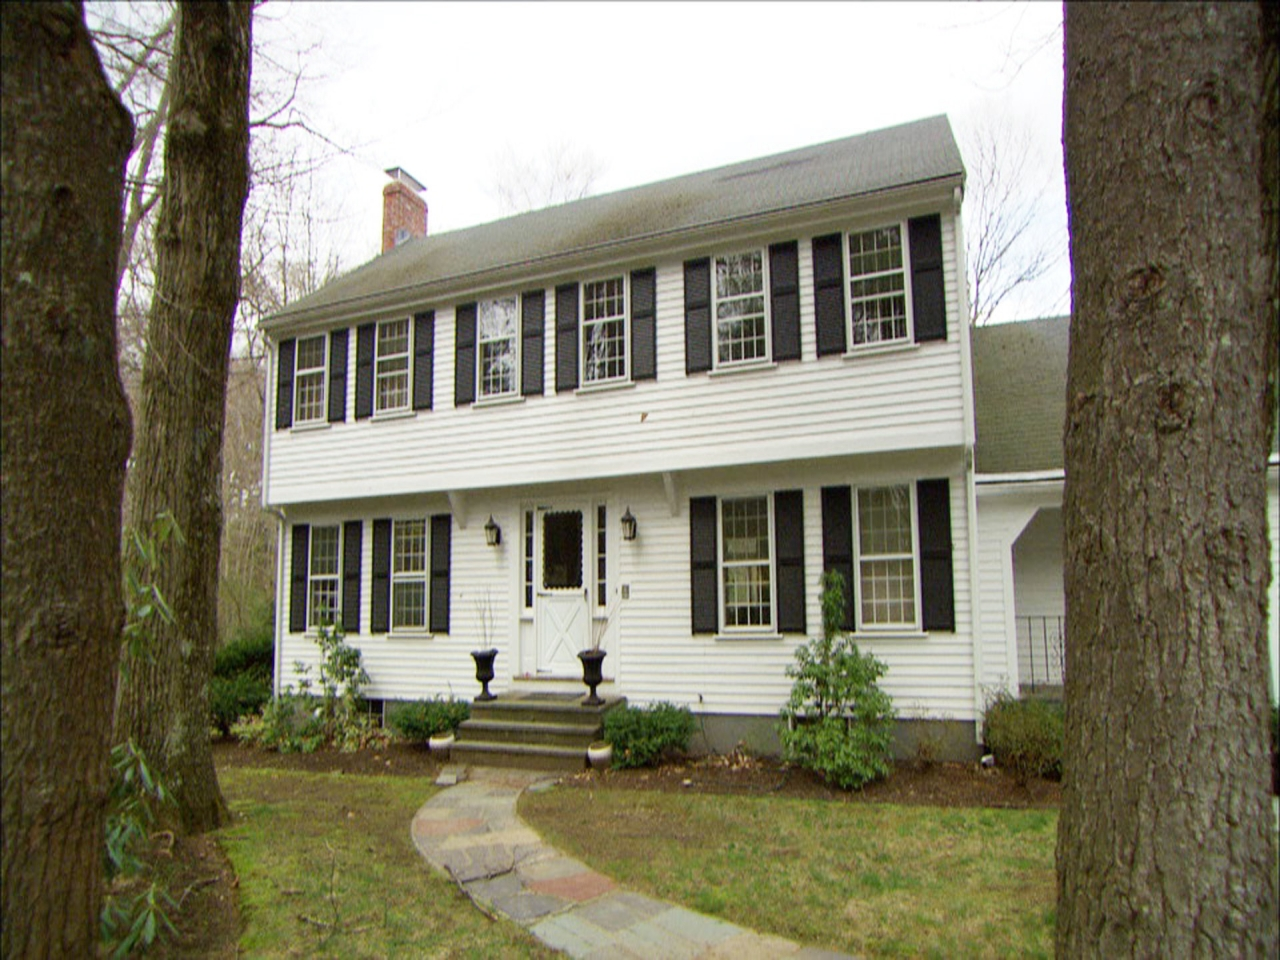 This old house colonial lexington american colonial houses for Homes in colonial america